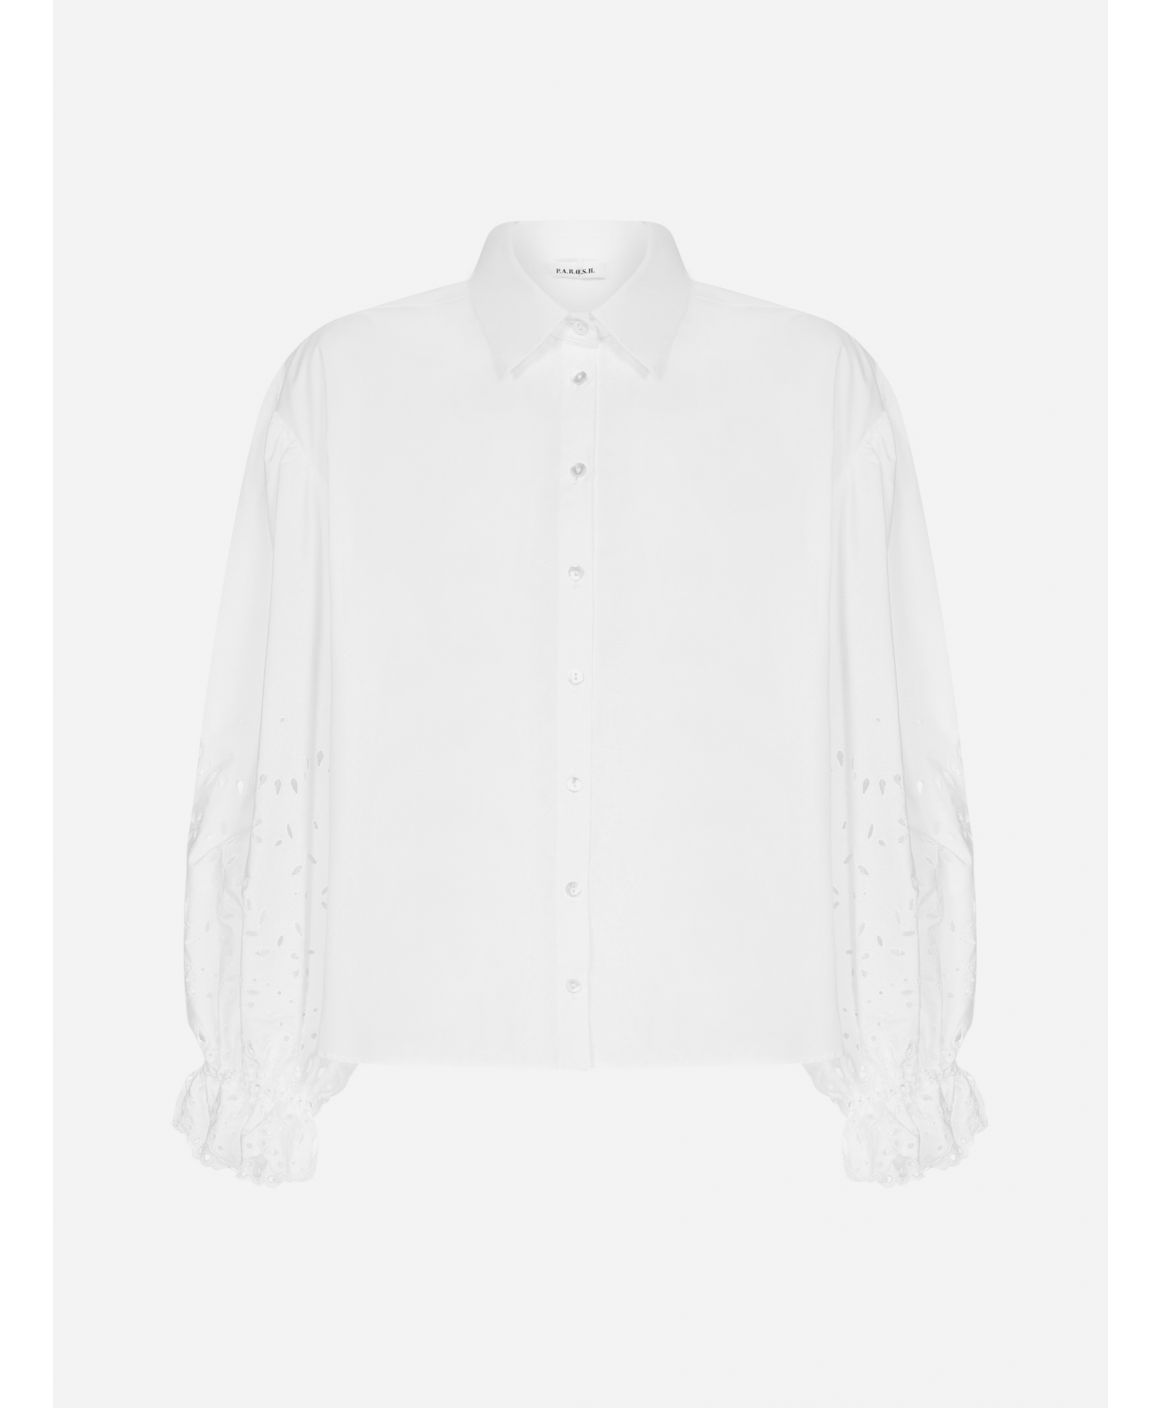 Cosan broderie anglaise cotton shirt